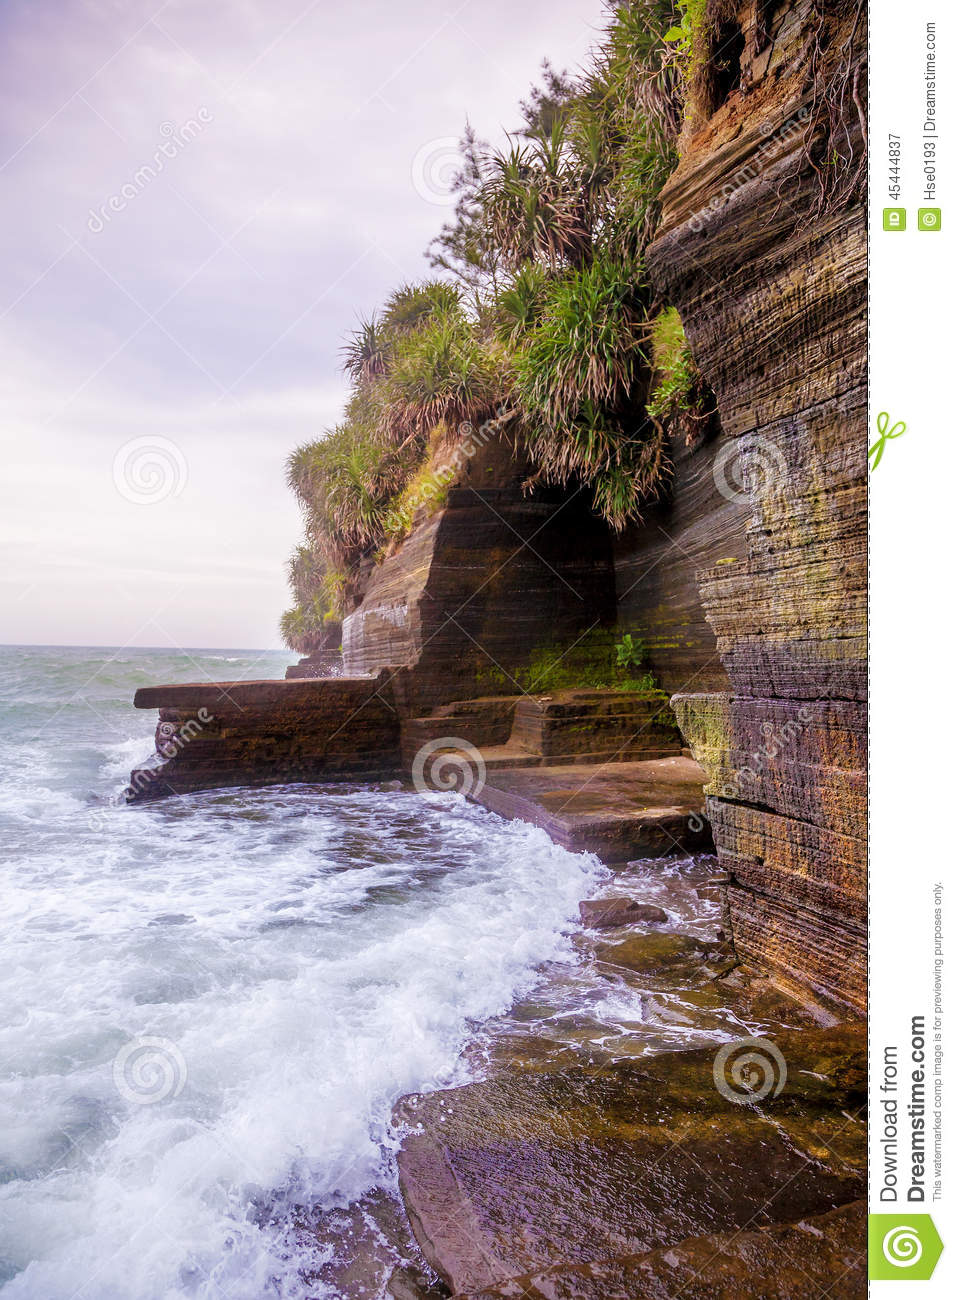 Volcanic cliff with sea waves